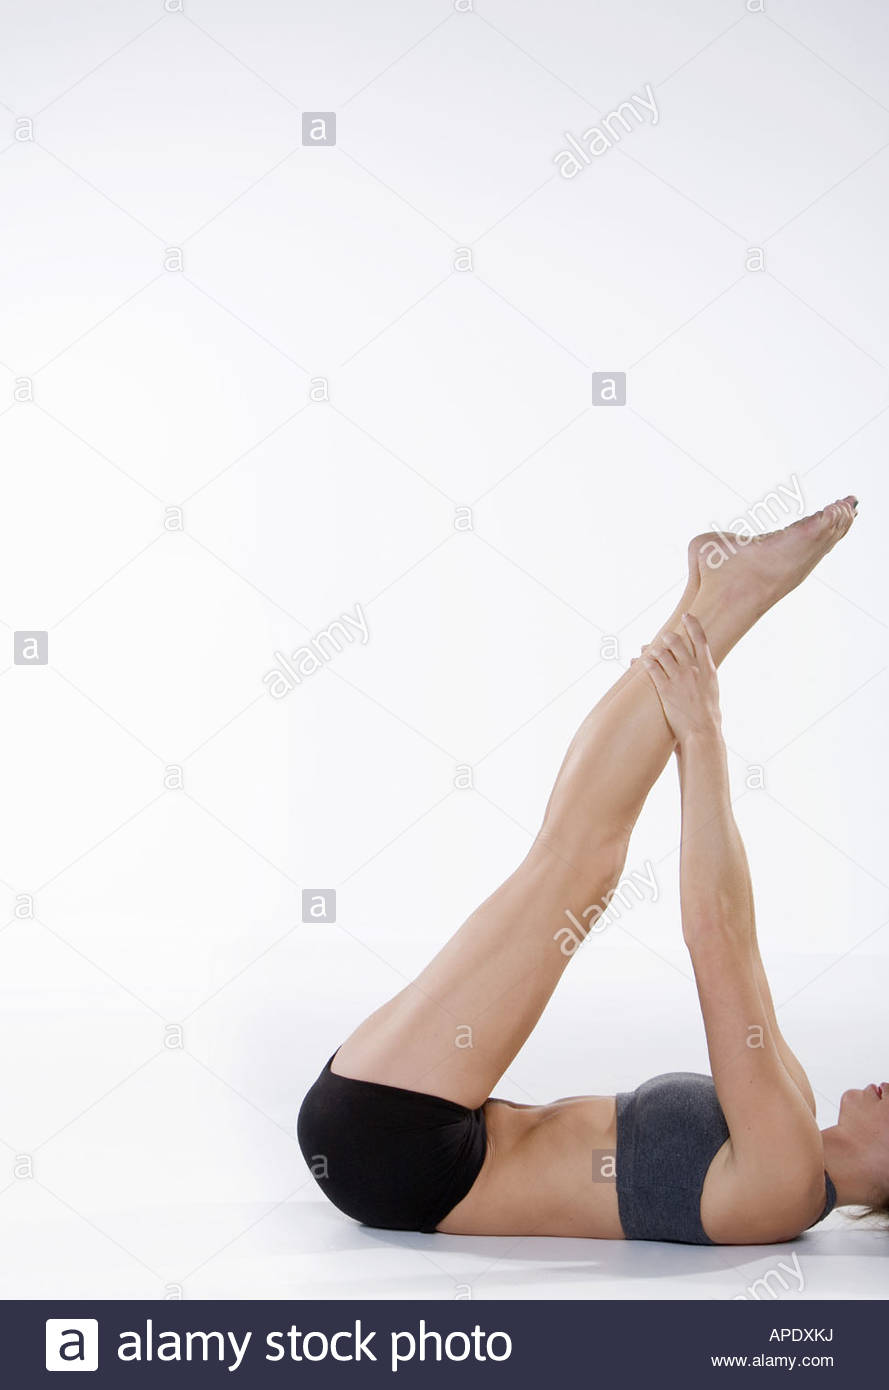 Woman in athletic gear stretching Photo Stock